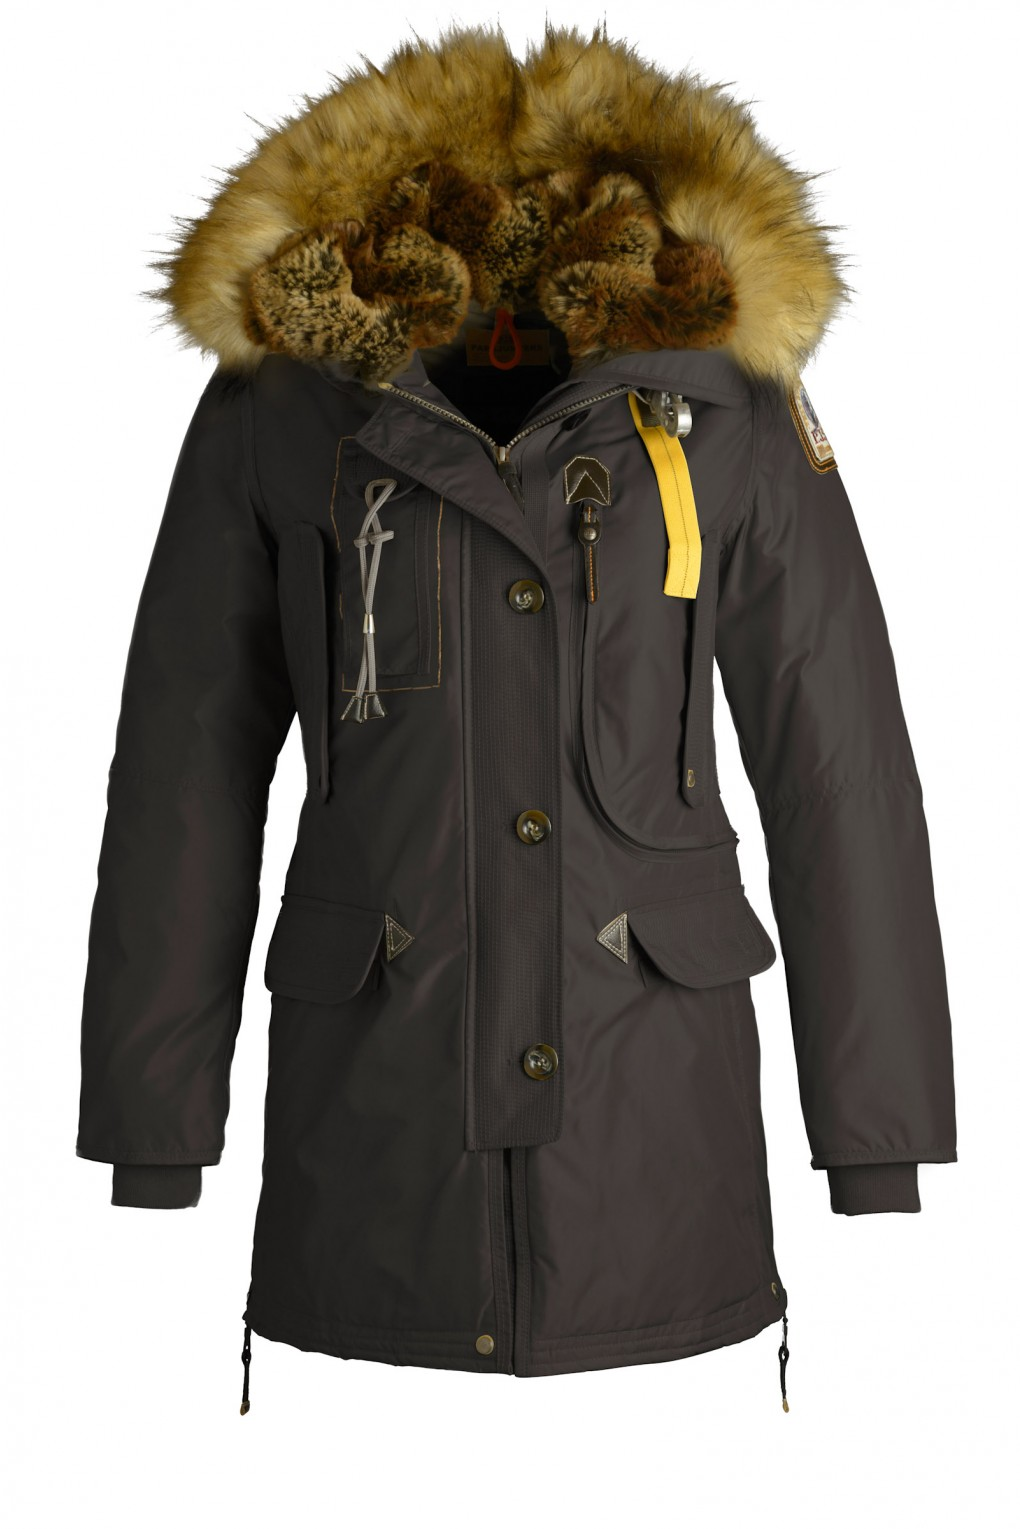 parajumpers KODIAK ECO woman outerwear Brown